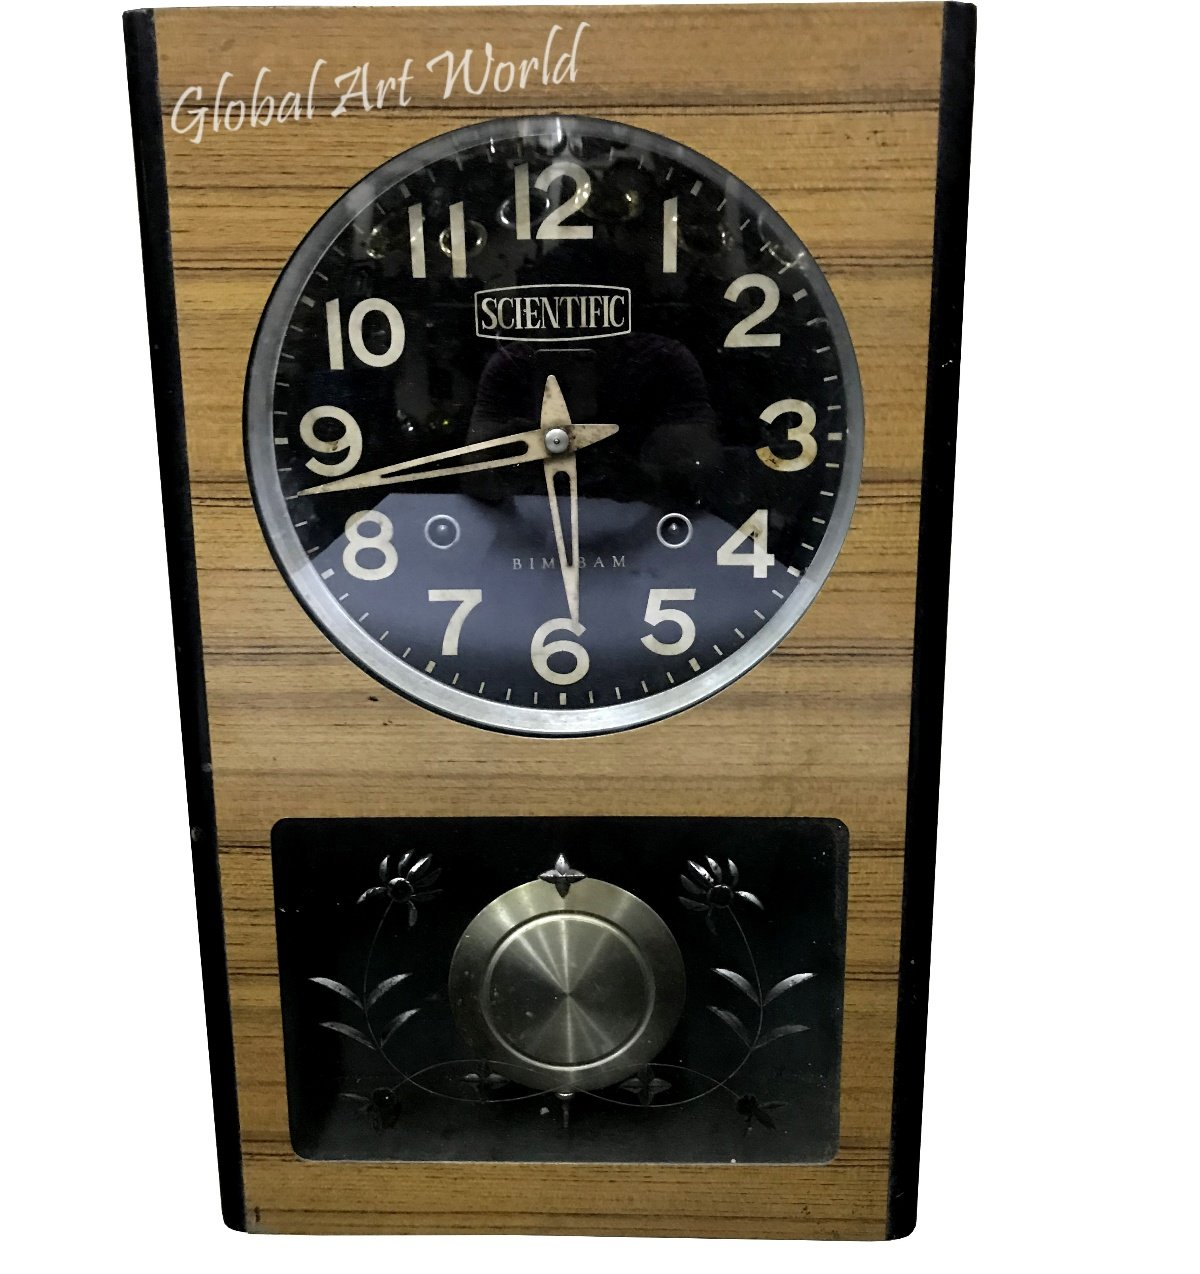 Global Art World Original Time Piece Antique Collectible Clocks 20th Century Stylized Watch Home & Wall Décor Vintage Genuine Scientific Wind Up Bim – Bam Wall Clock HB 0194